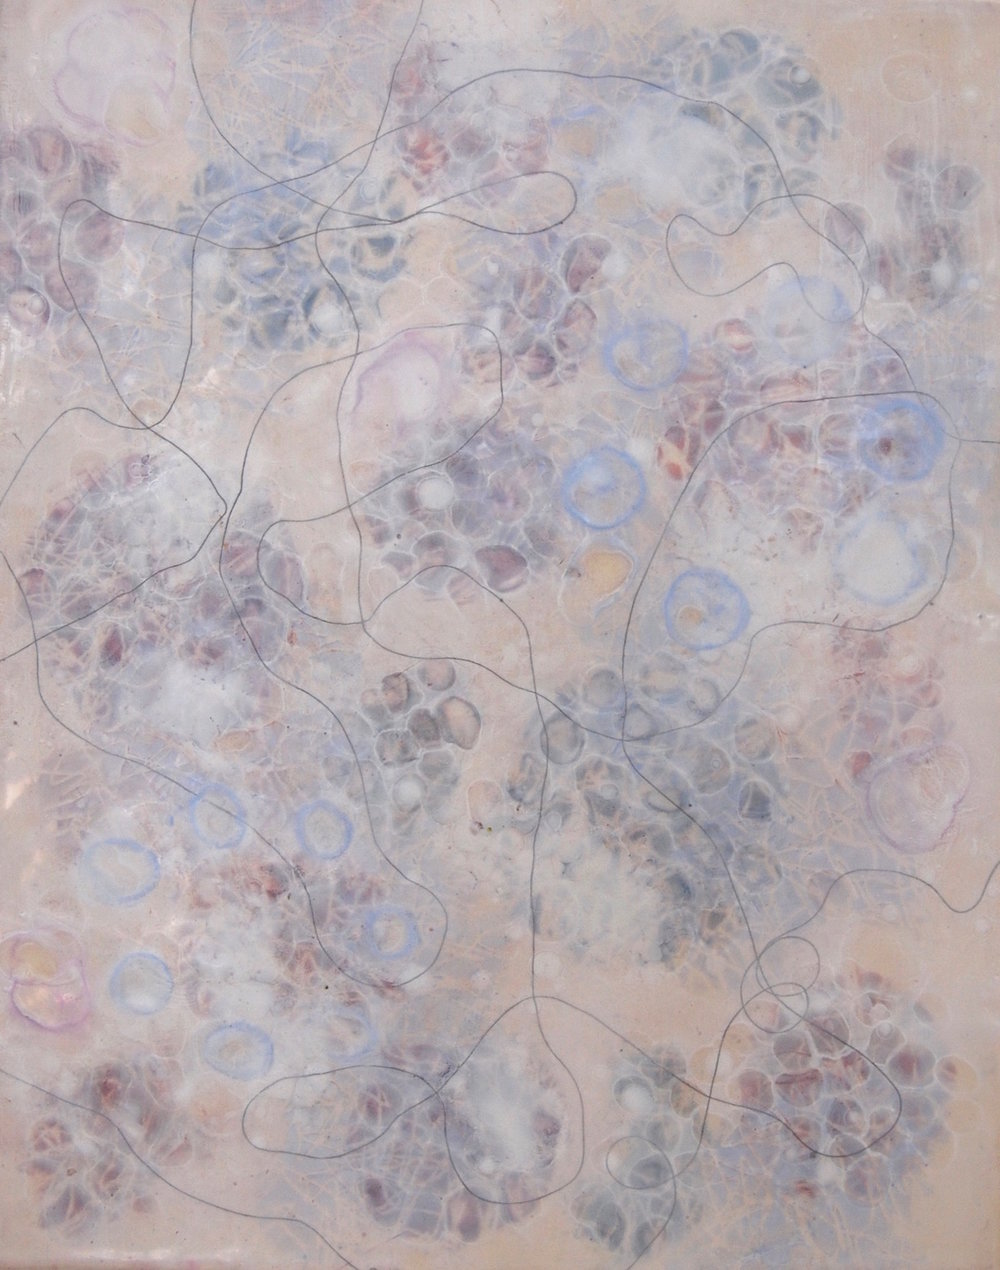 K. Hartung,  Bio Shadows 4 , encaustic and mixed media, 20x16